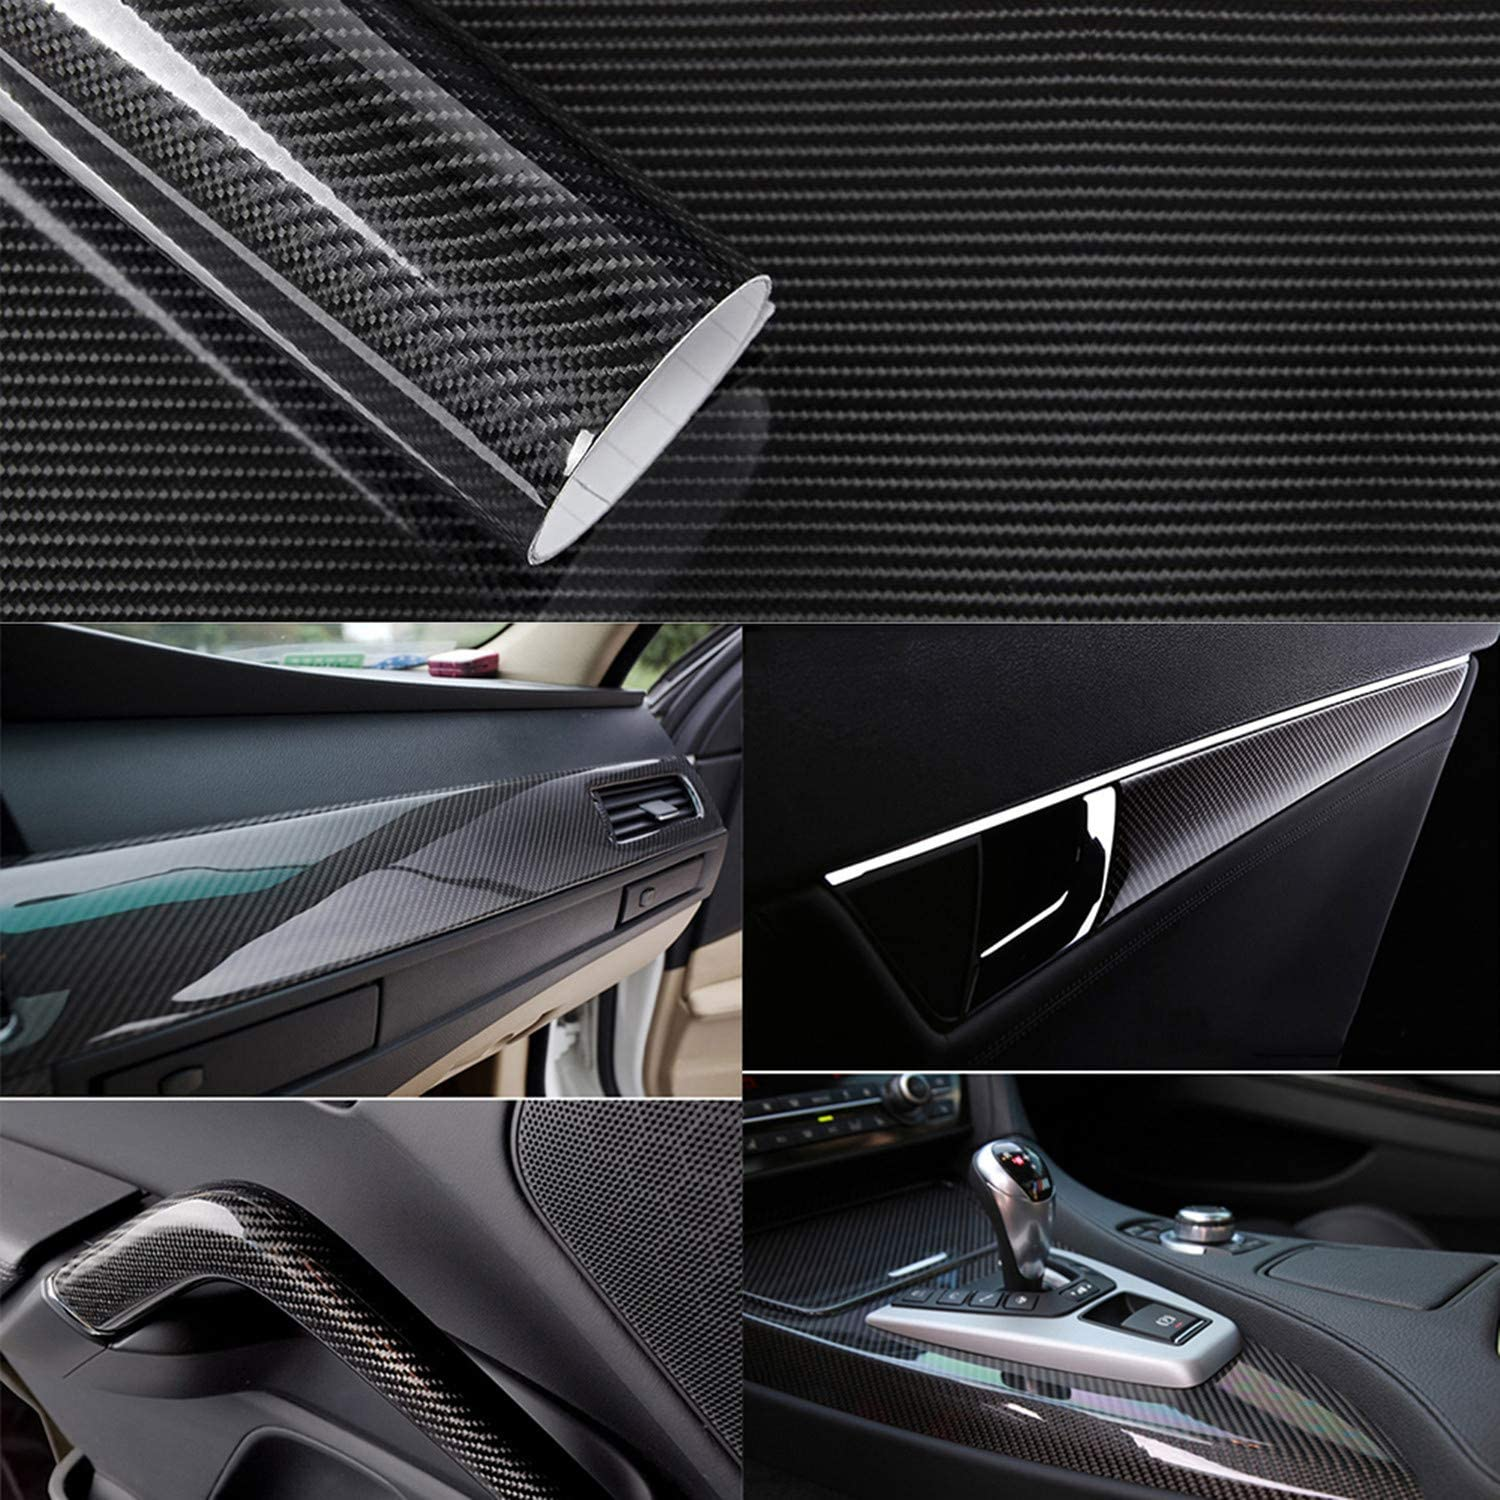 3D Carbon-Folie Black Car Wrapping Car-Wrapping with Air Channels Bubble-Free